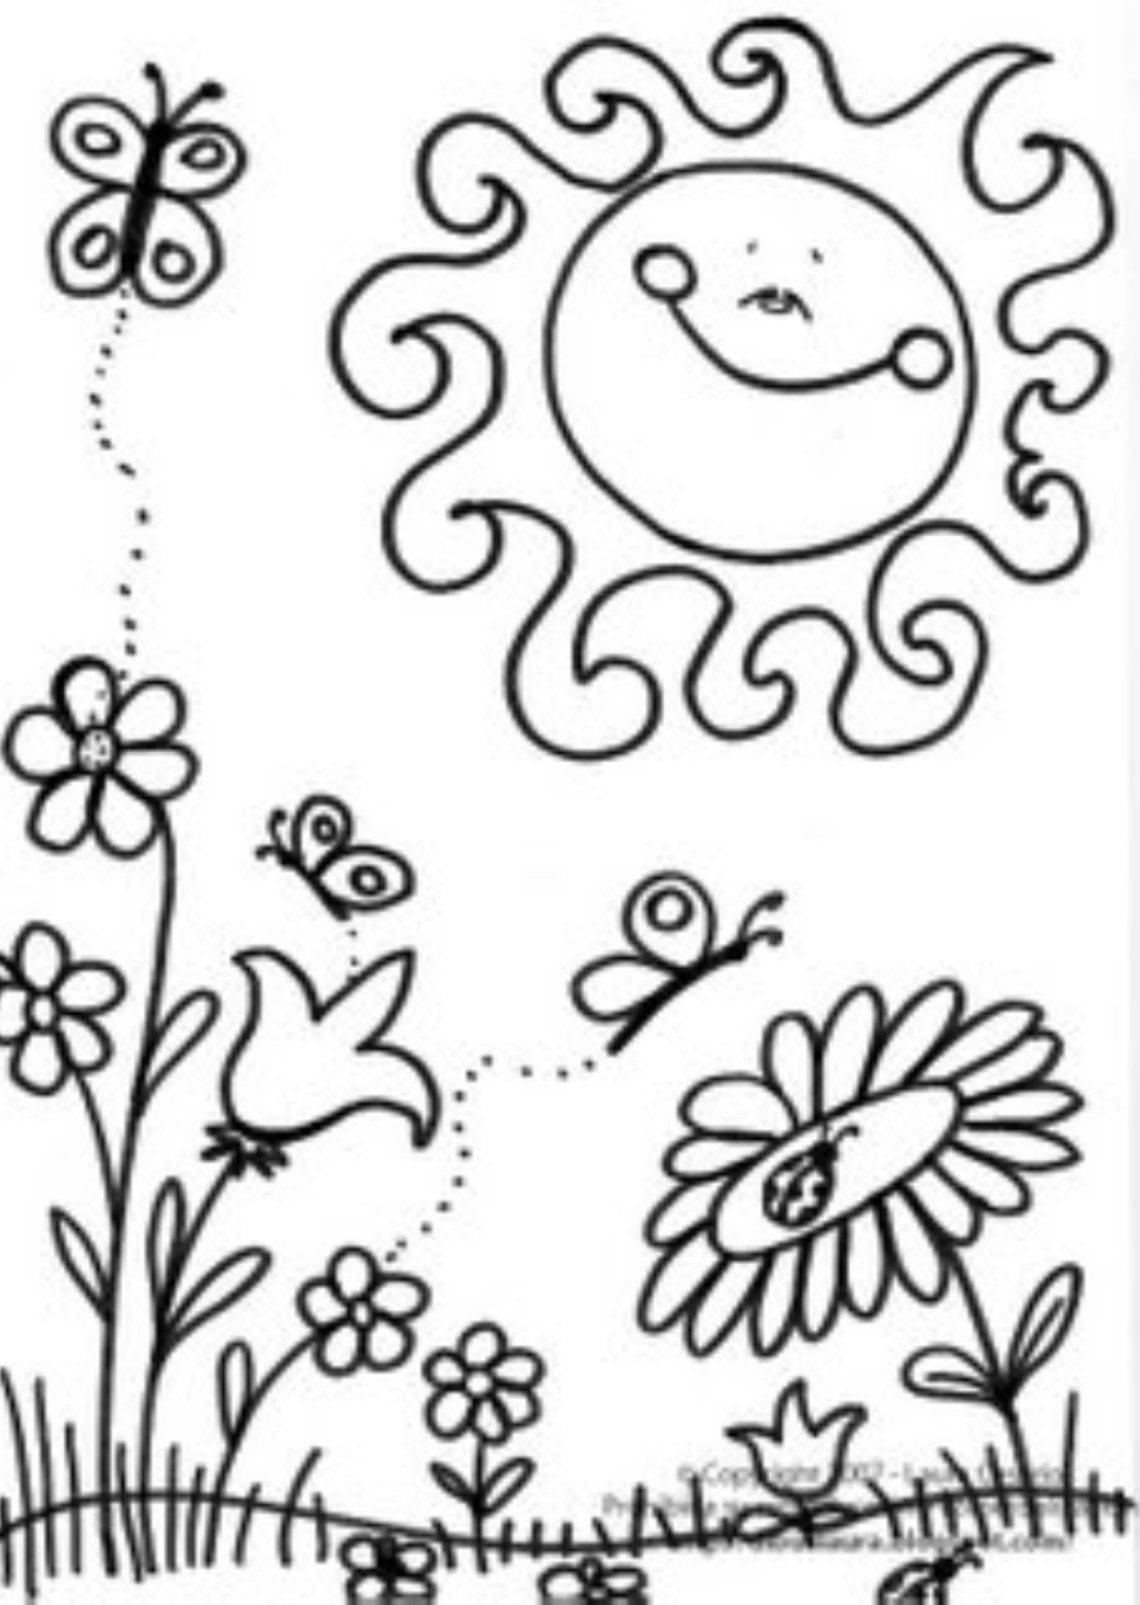 Spring coloring pages to download and print for free | coloring pages for kindergarten